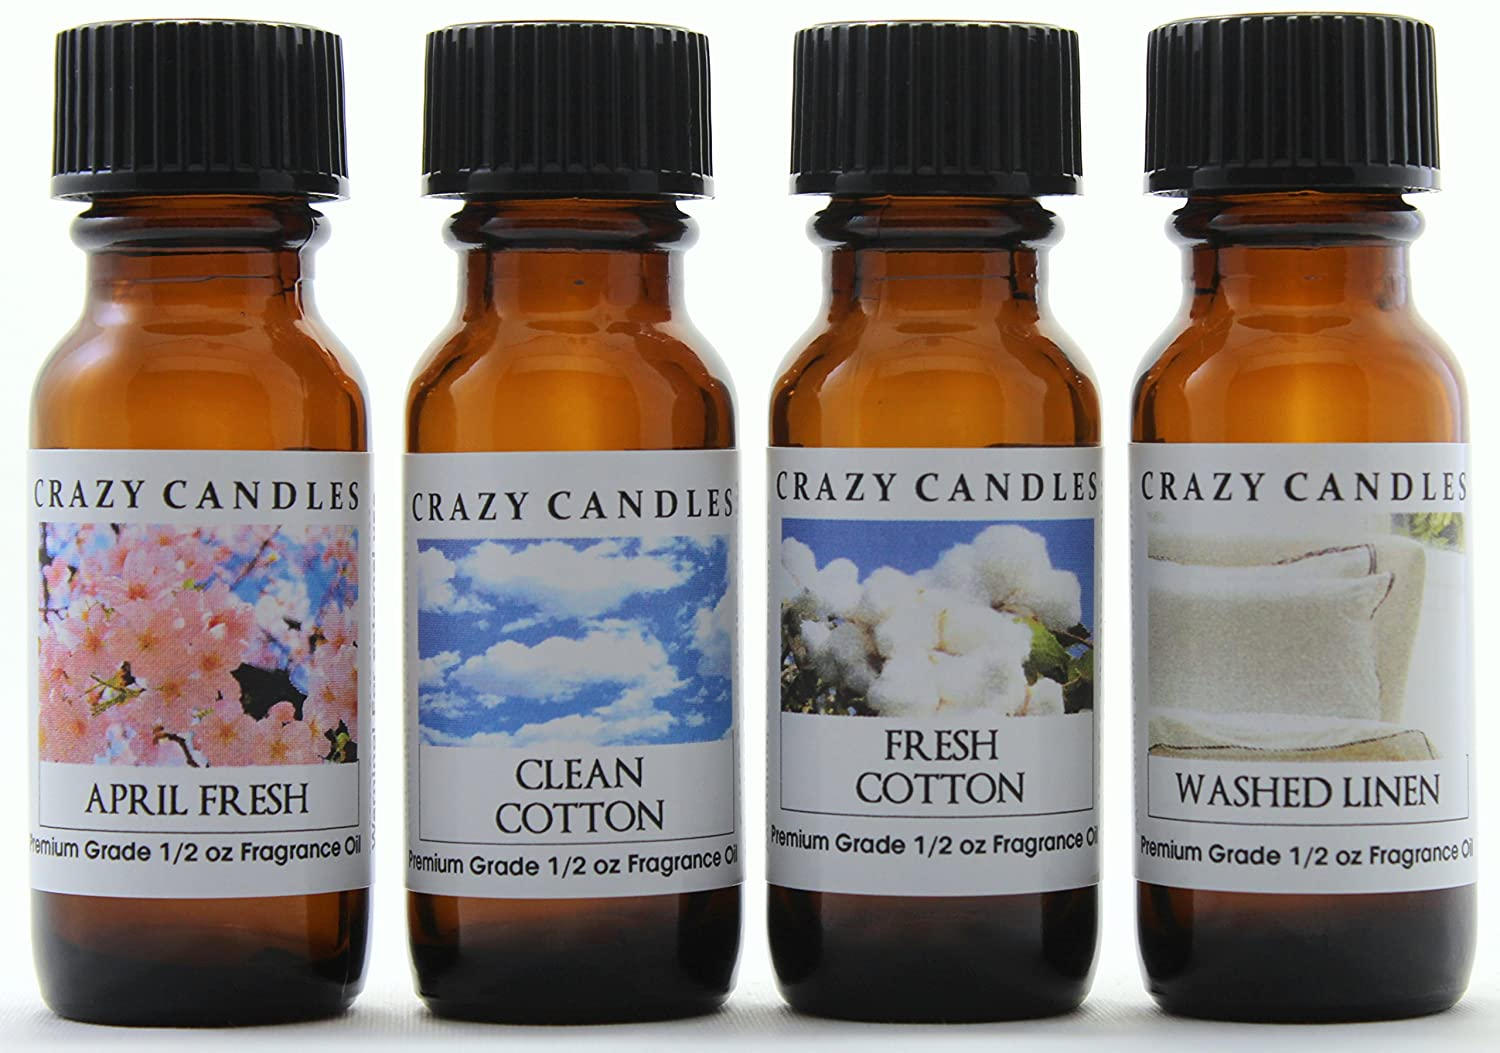 Crazy Candles 4 Bottle Set (Made in USA) 1 April Fresh, 1 Clean Cotton, 1 Fresh Cotton, 1 Washed Linen 1/2 Fl Oz Each (15ml) Premium Grade Scented Fragrance Oils